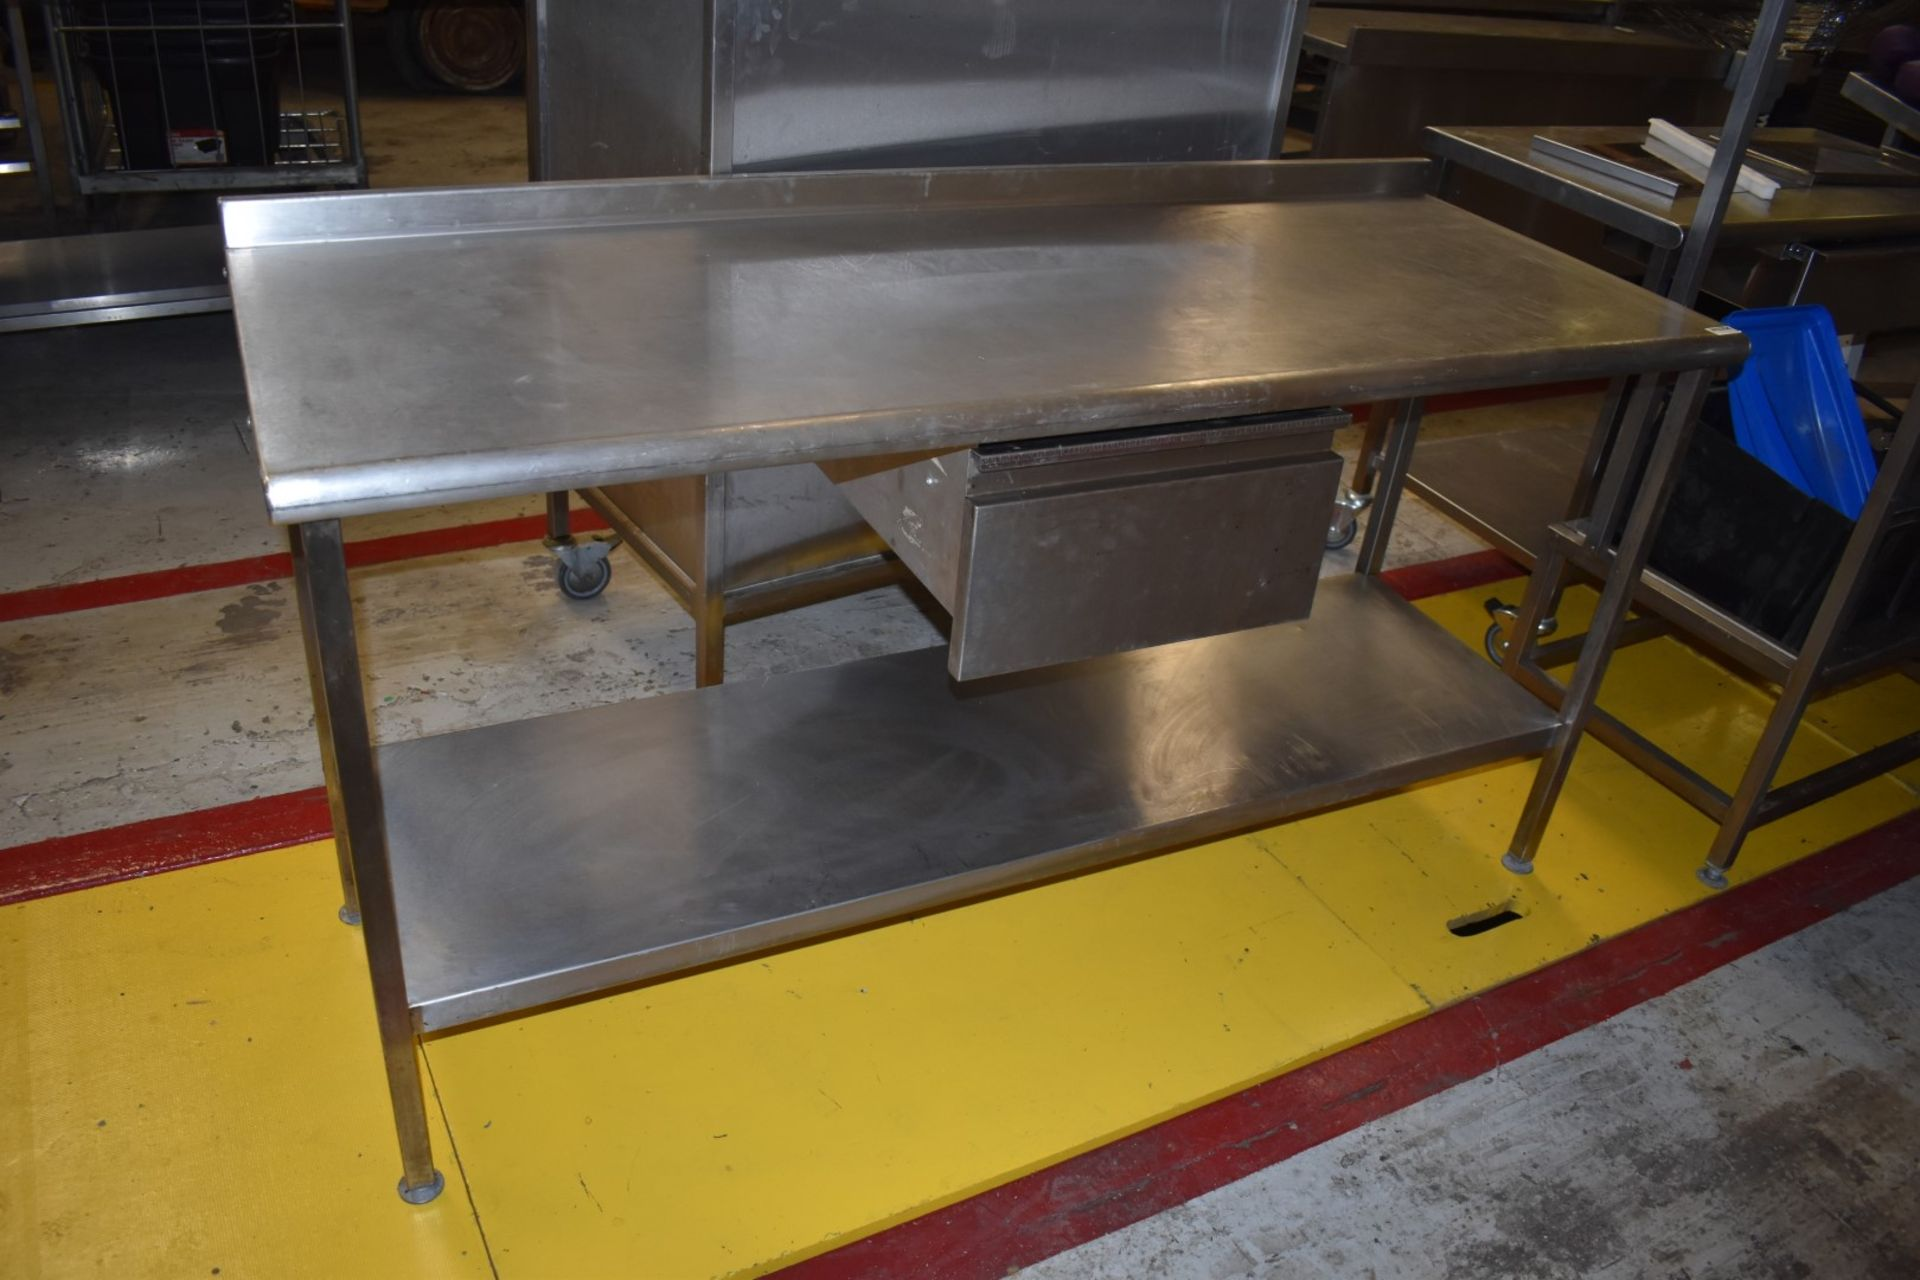 1 x Stainless Steel Prep Bench With Drawer and Undershelf - H87 x W170 x D65 cms - CL626 - Ref MS304 - Image 4 of 6